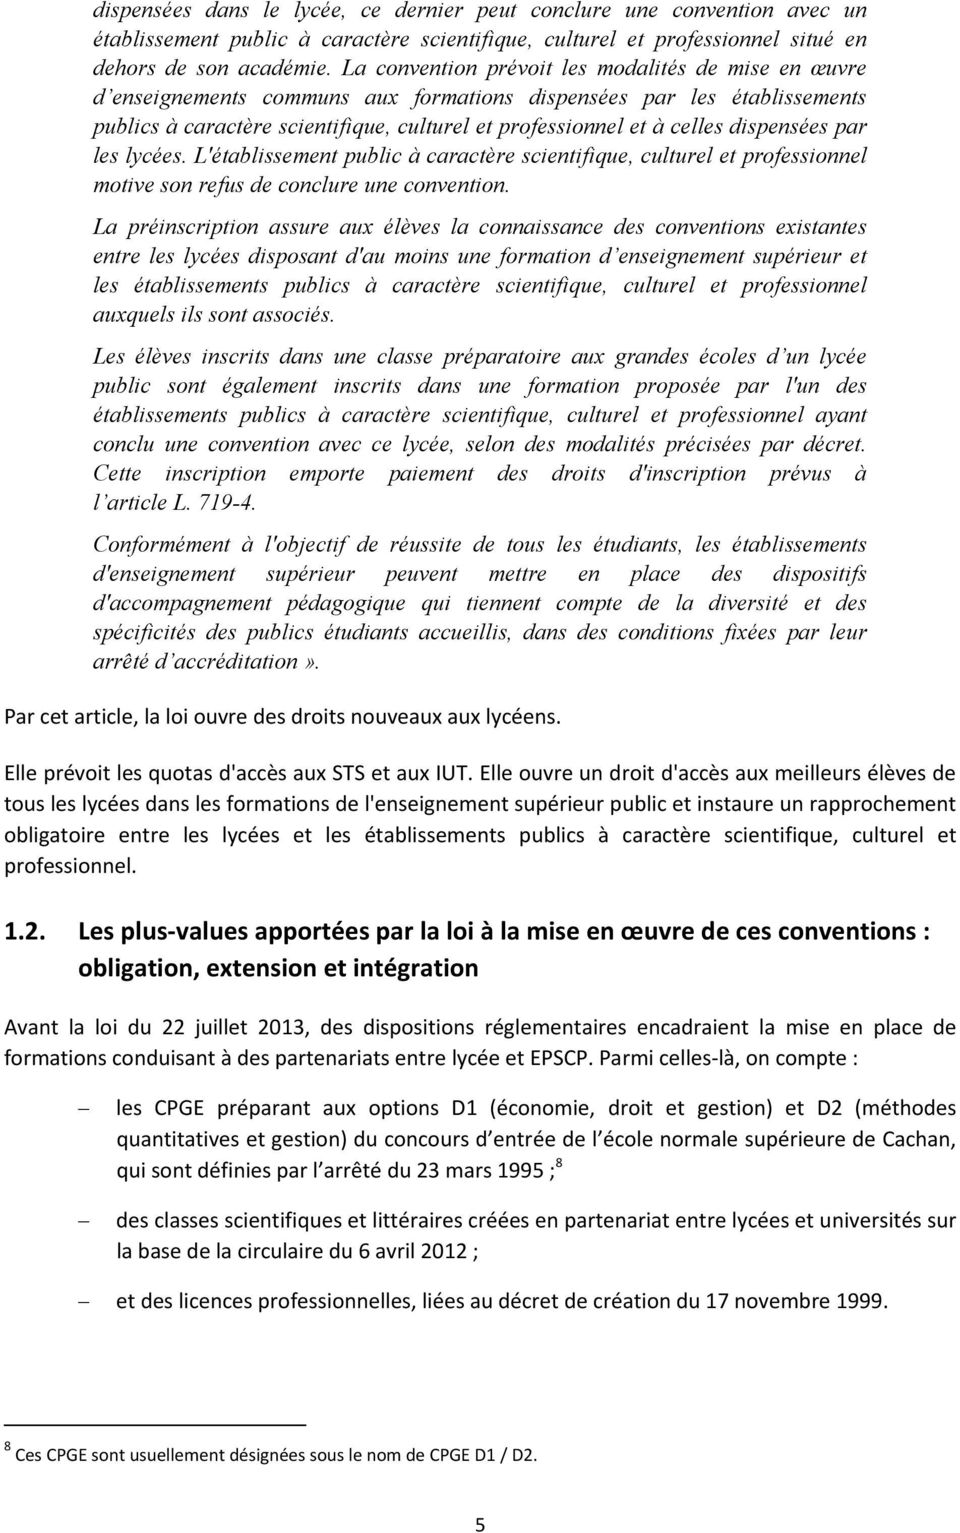 dispensées par les lycées. L'établissement public à caractère scientifique, culturel et professionnel motive son refus de conclure une convention.